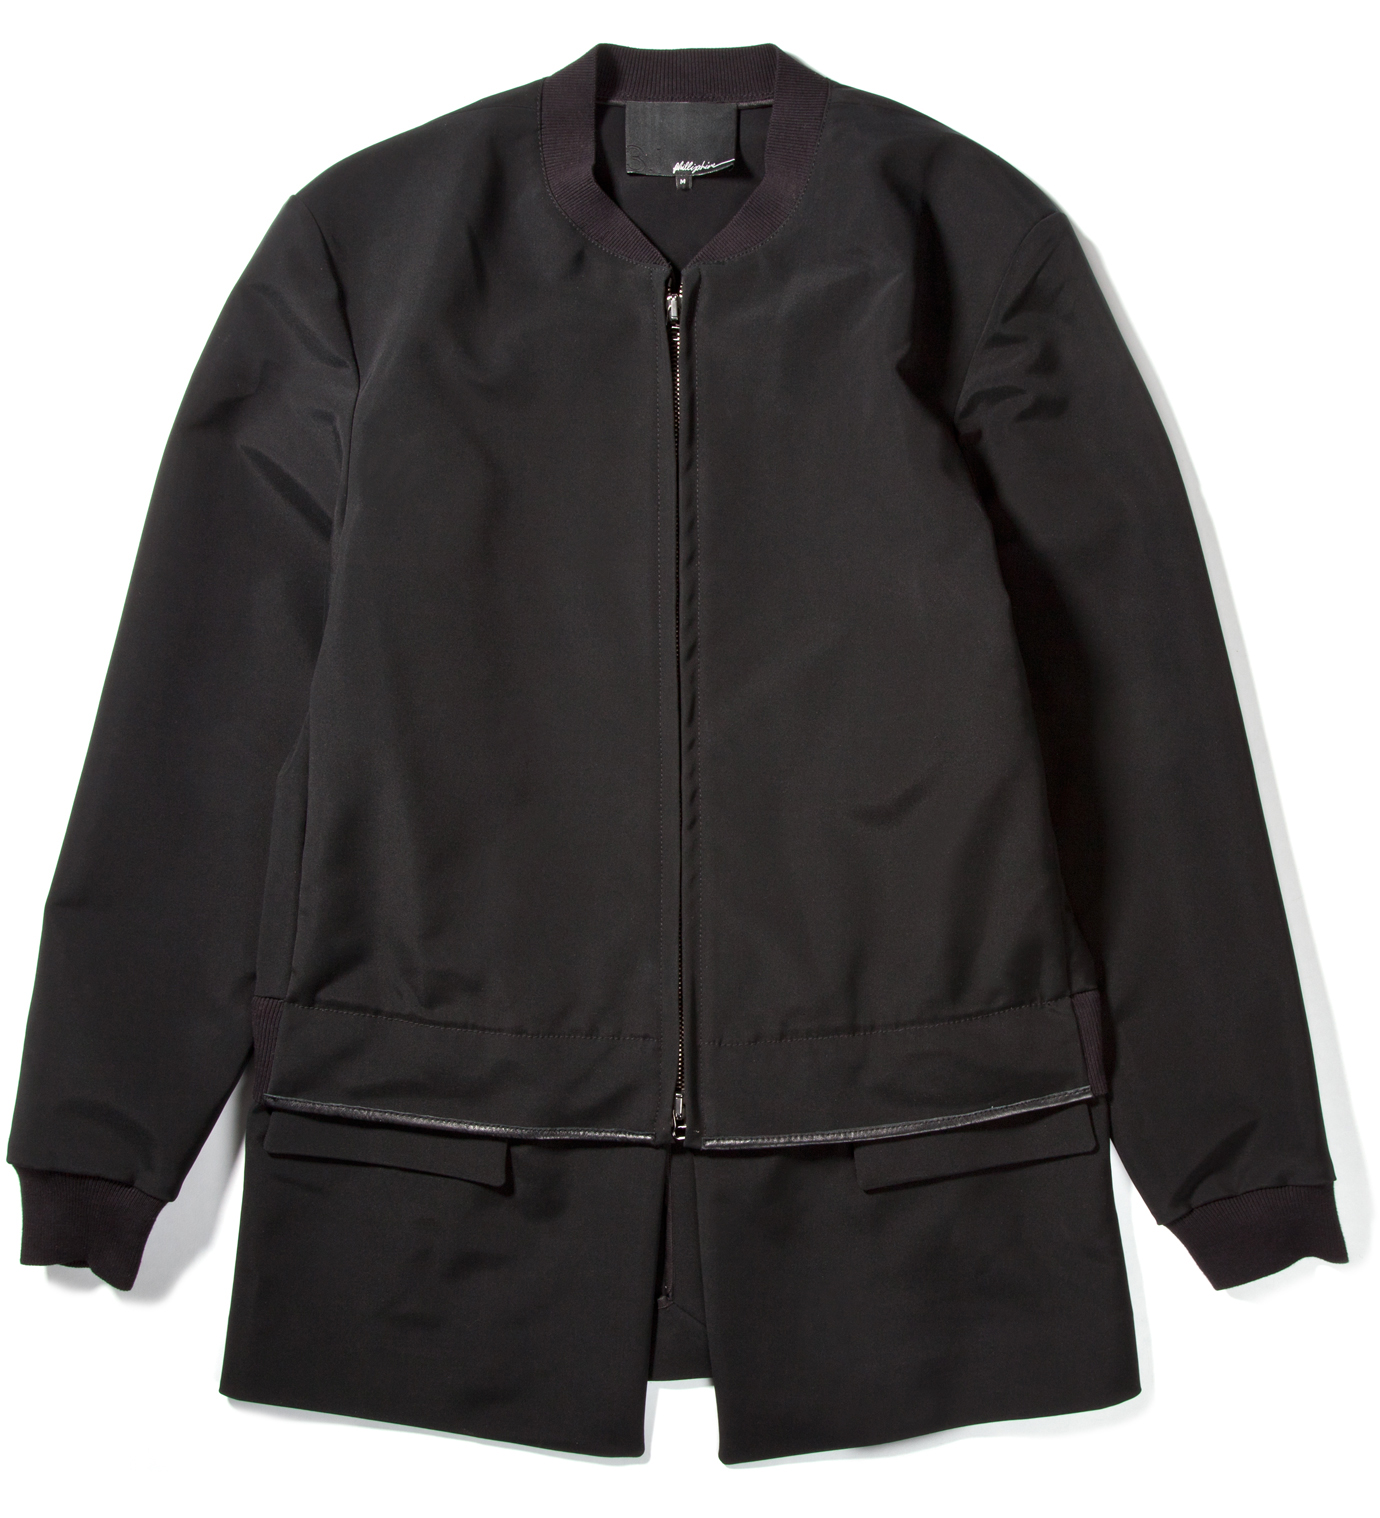 3.1 Phillip Lim Black Zip Front Athletic Jacket with Detachable Panel